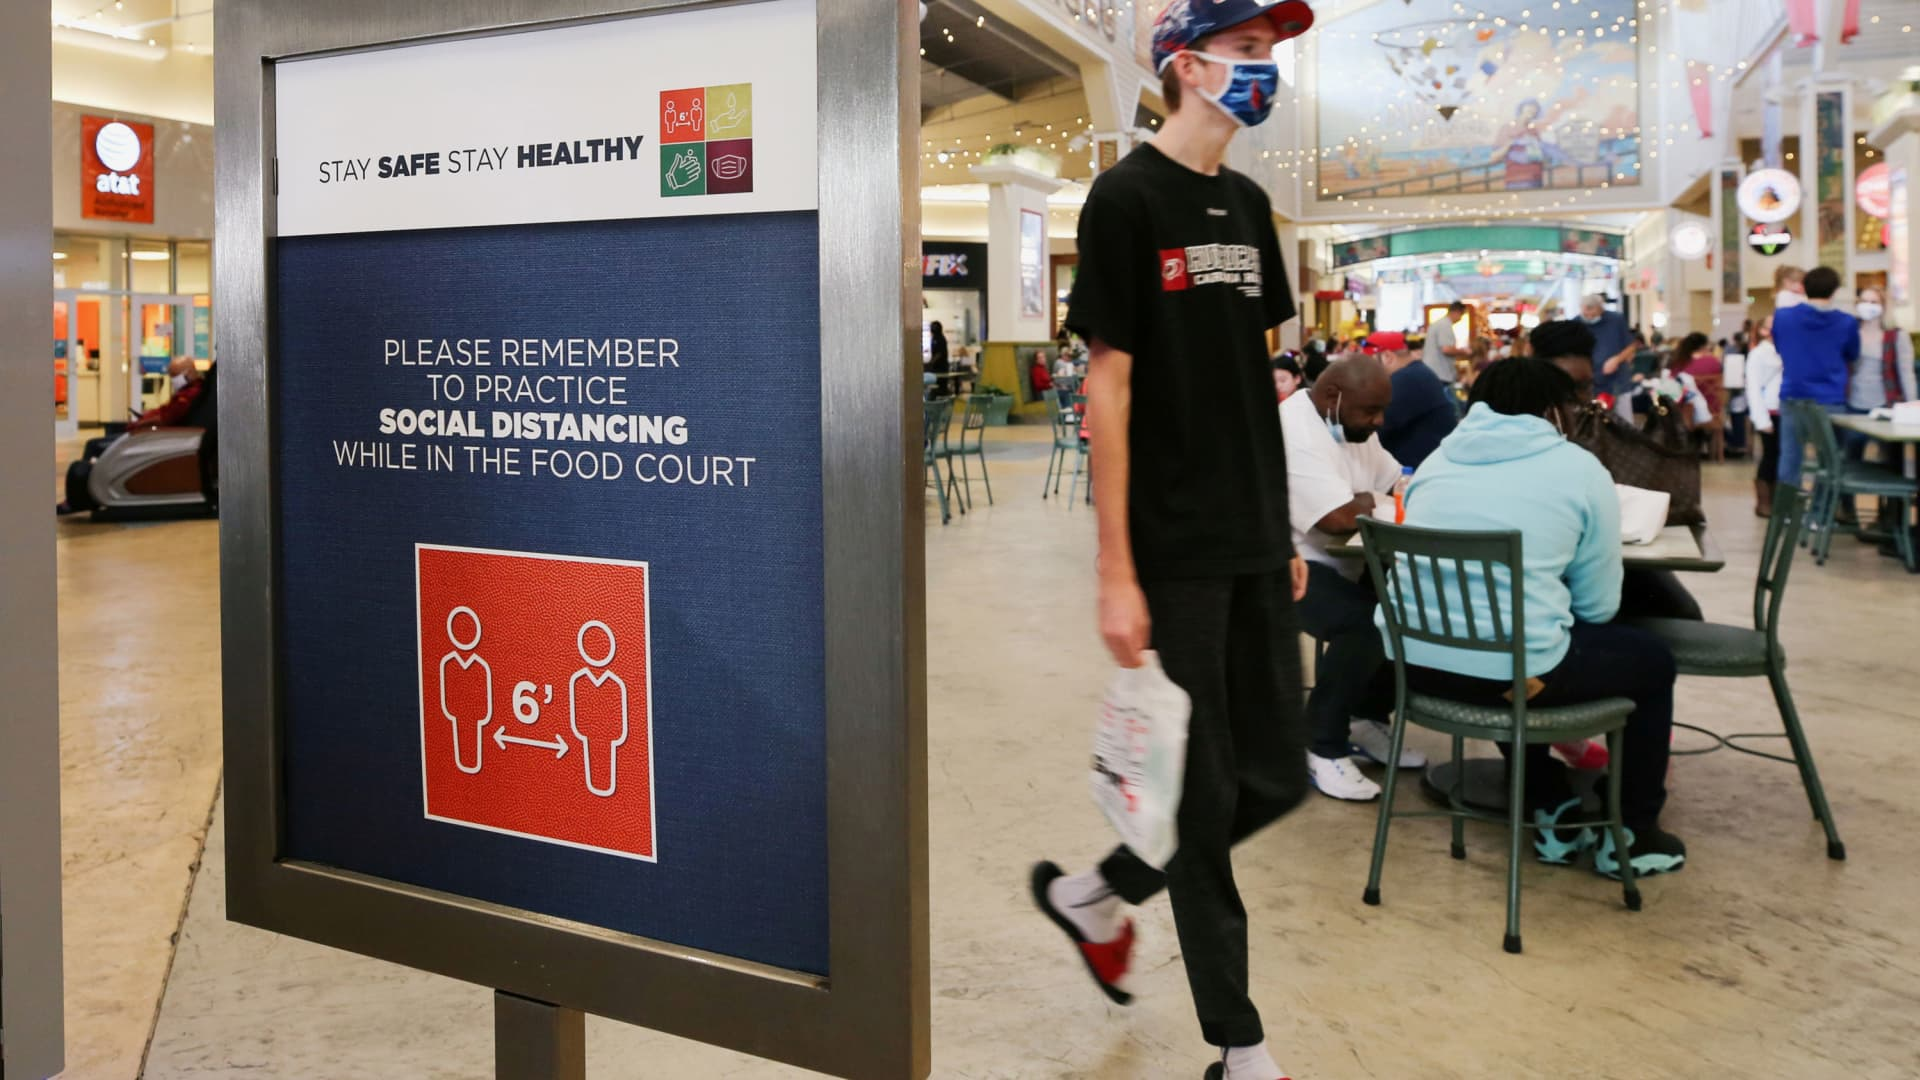 A shopper wearing a protective mask passes a social distancing sign at Coastal Grand Mall on Black Friday, in Myrtle Beach, South Carolina, November 27, 2020.